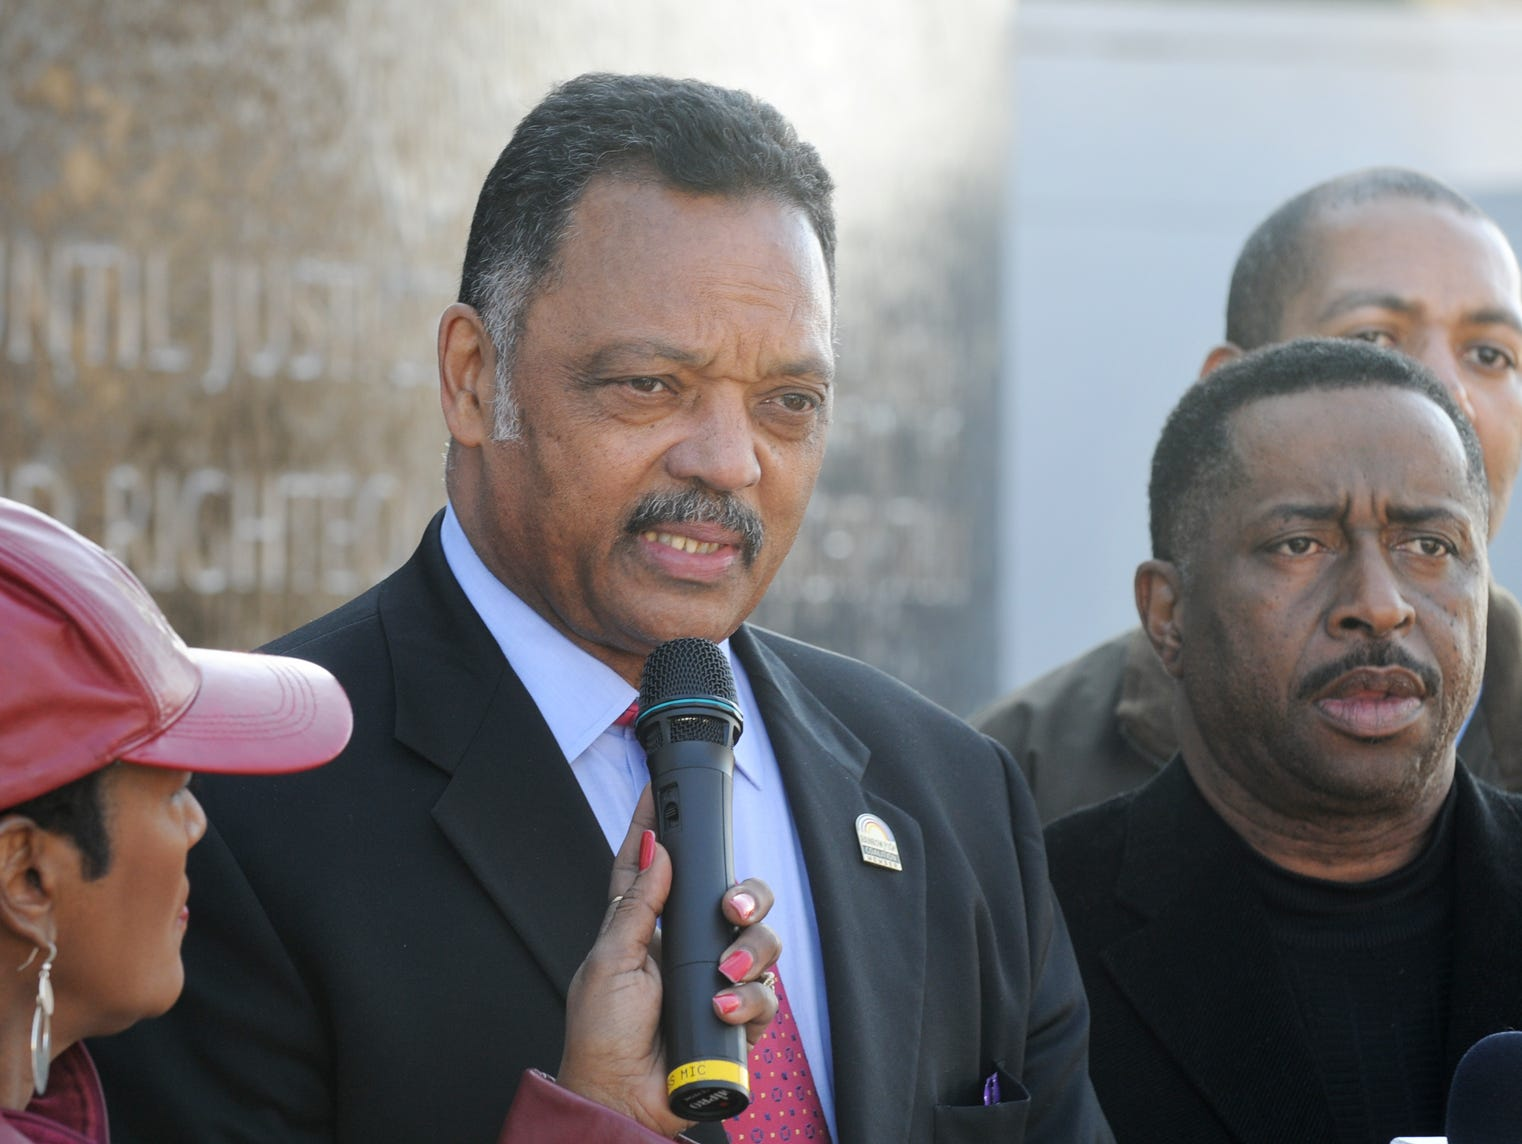 March 8 - - Jesse Jackson stopped at the Civil Rights Memorial to speak of the legacy of Martin Luther King on Saturday, March 8, 2008, in Montgomery, Ala.. At left, Cubie Rae Hayes, Calhoun Enterprises PR director holds a microphone, at right, Greg Calhoun and Jon Dow. (Montgomery Advertiser, Lloyd Gallman)